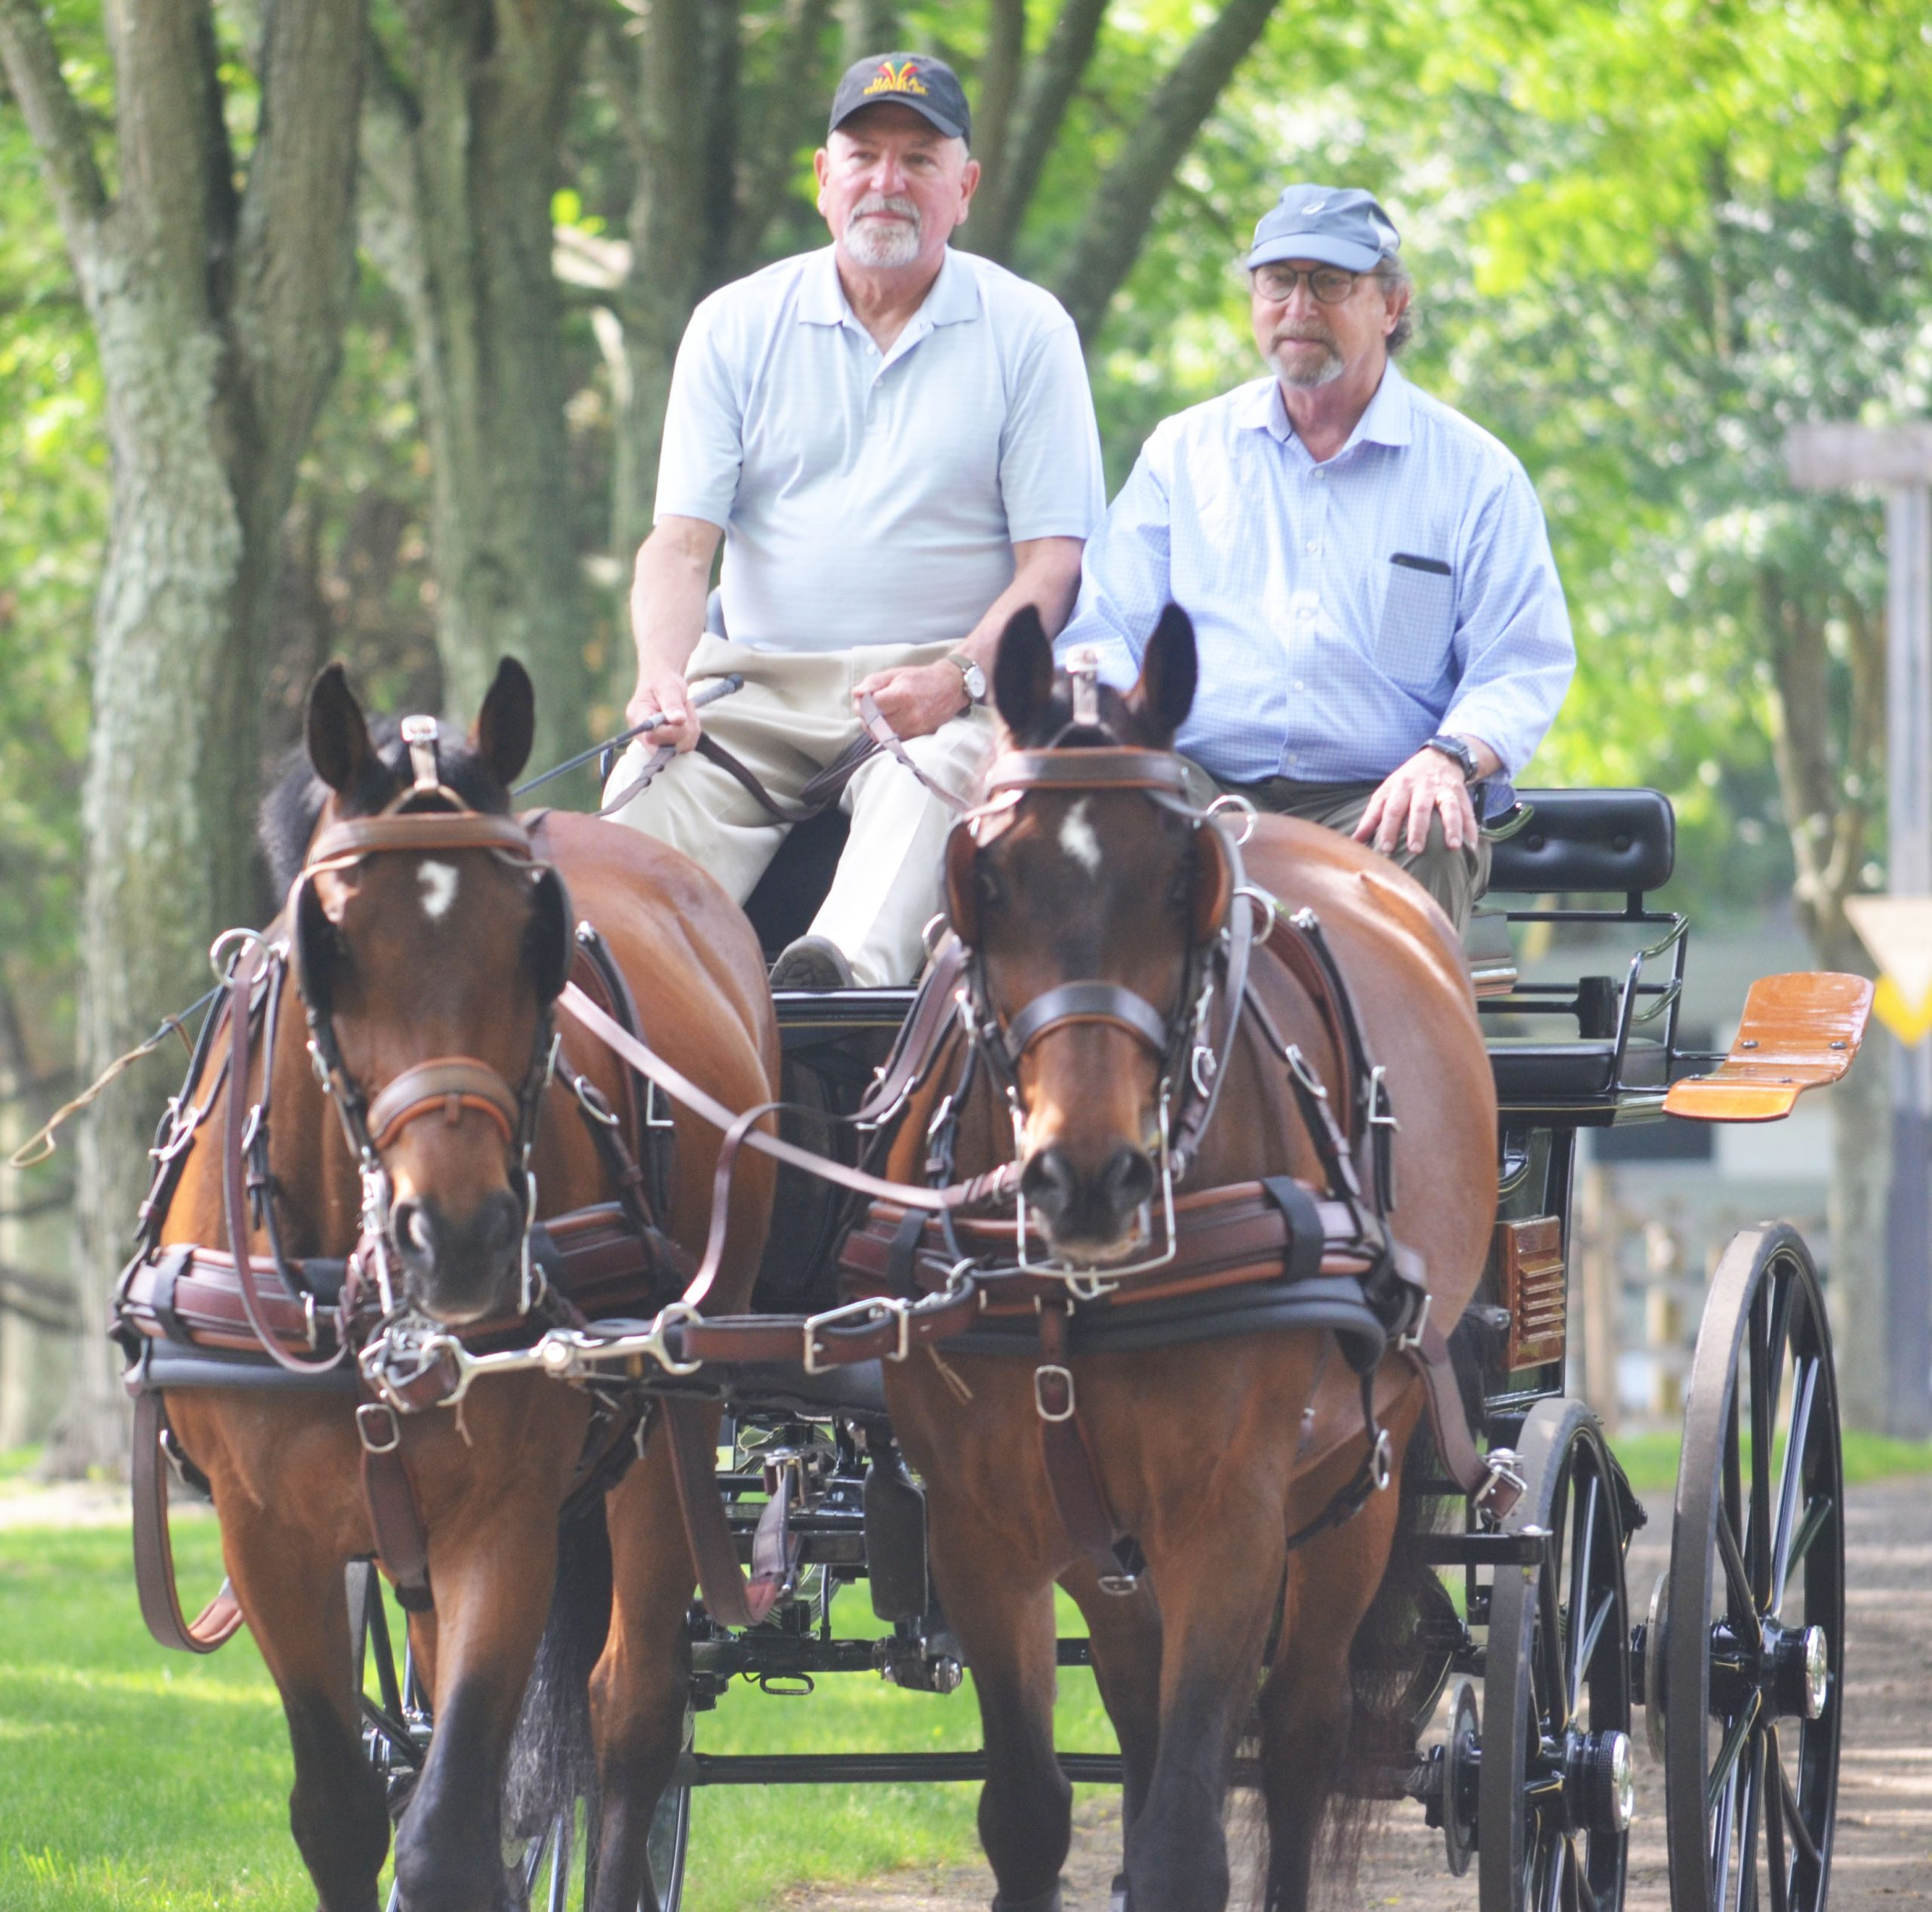 Chet Halka, pictured left, driving Secretary Fisher in one of the carriages Chet uses in the Combined Driving Competitions.